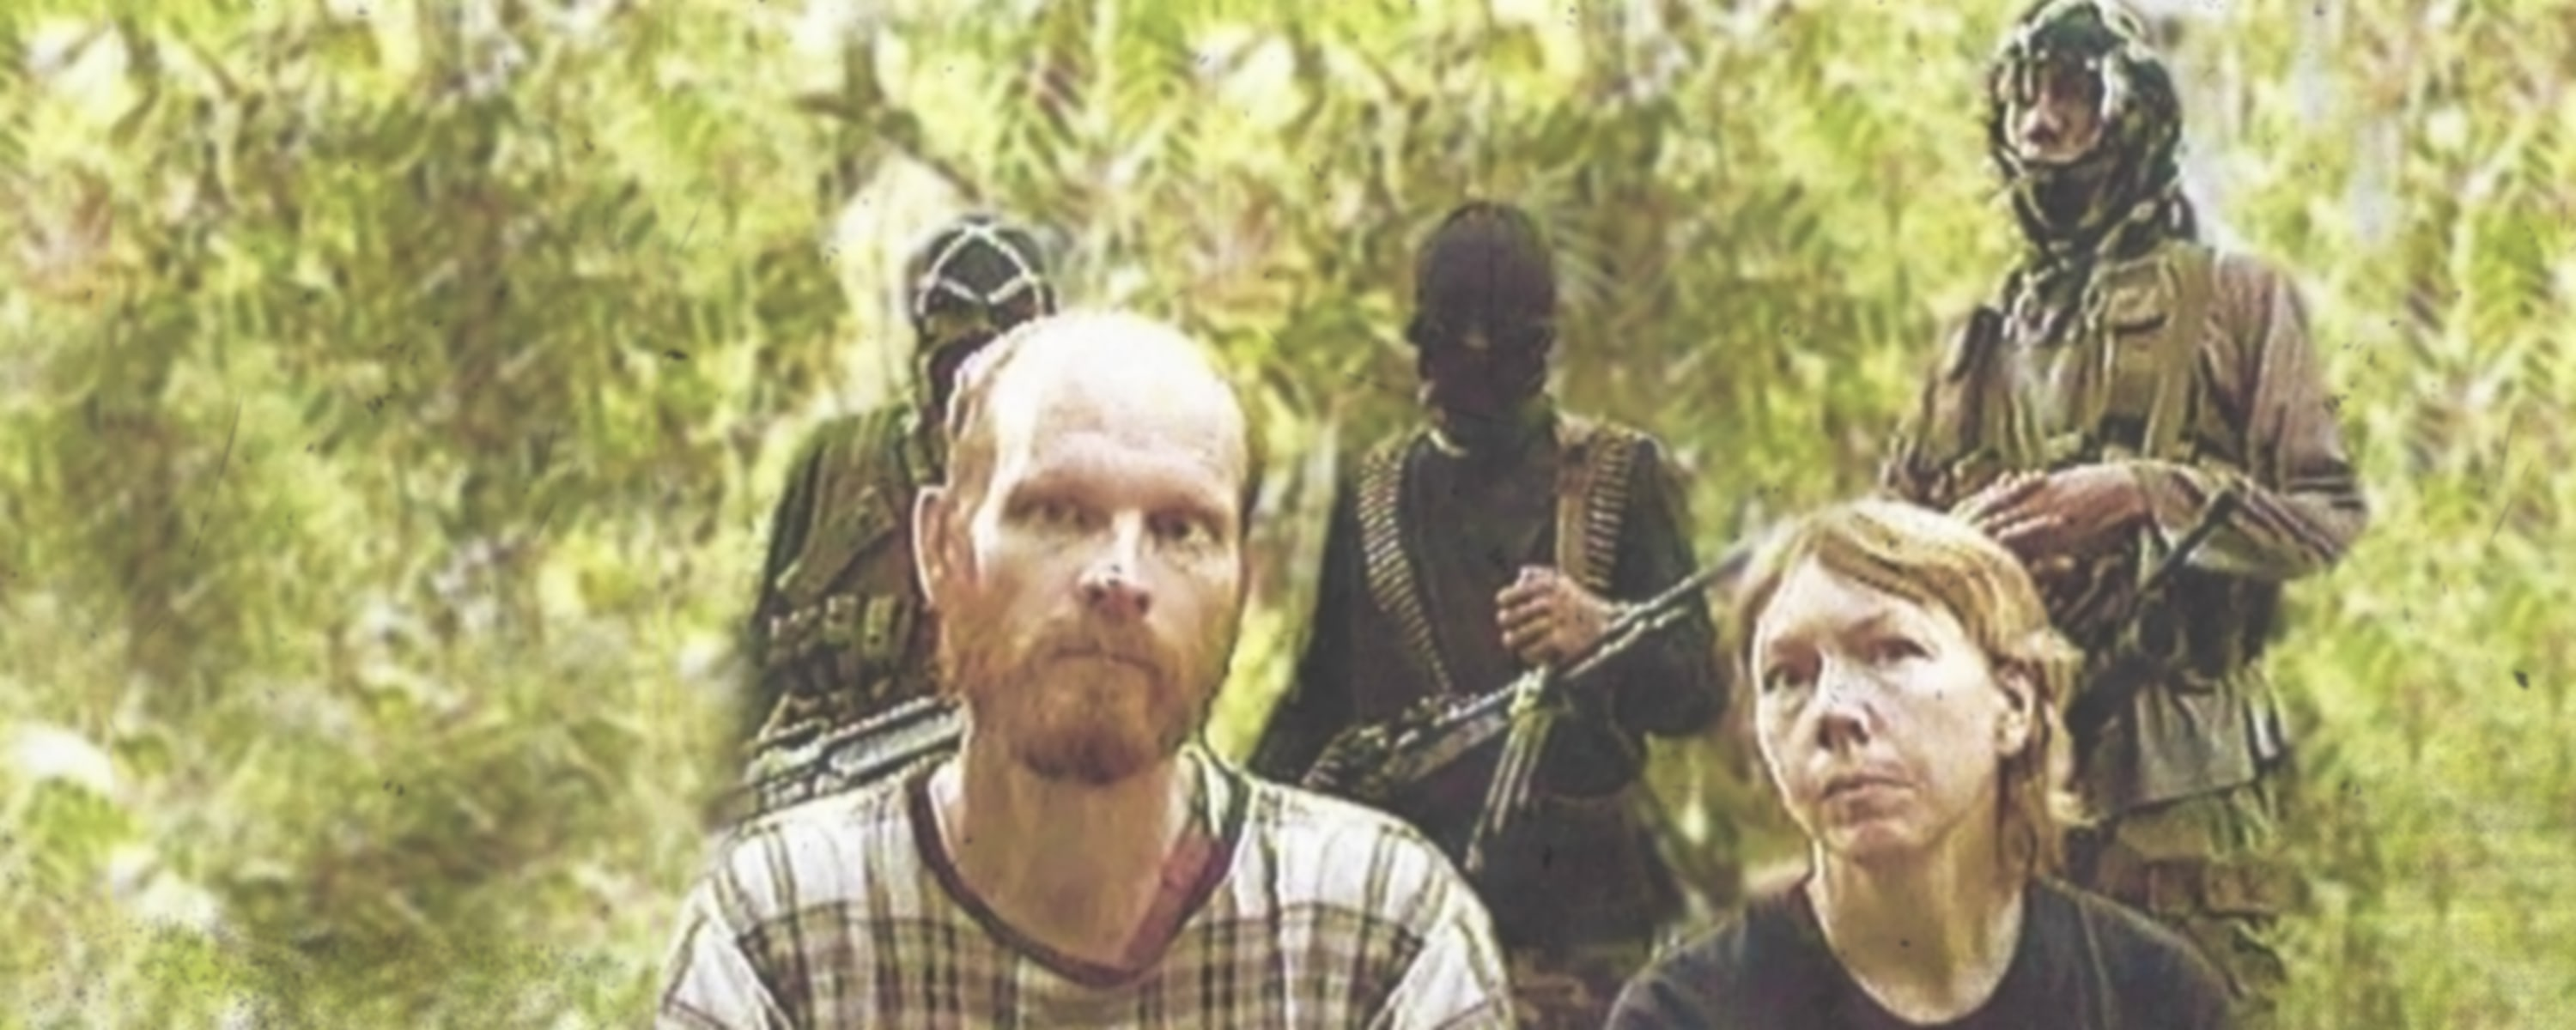 Gracia, and her husband, Martin Burnham were taken captive by a militant group of Muslims called the Abu Sayyaf Group